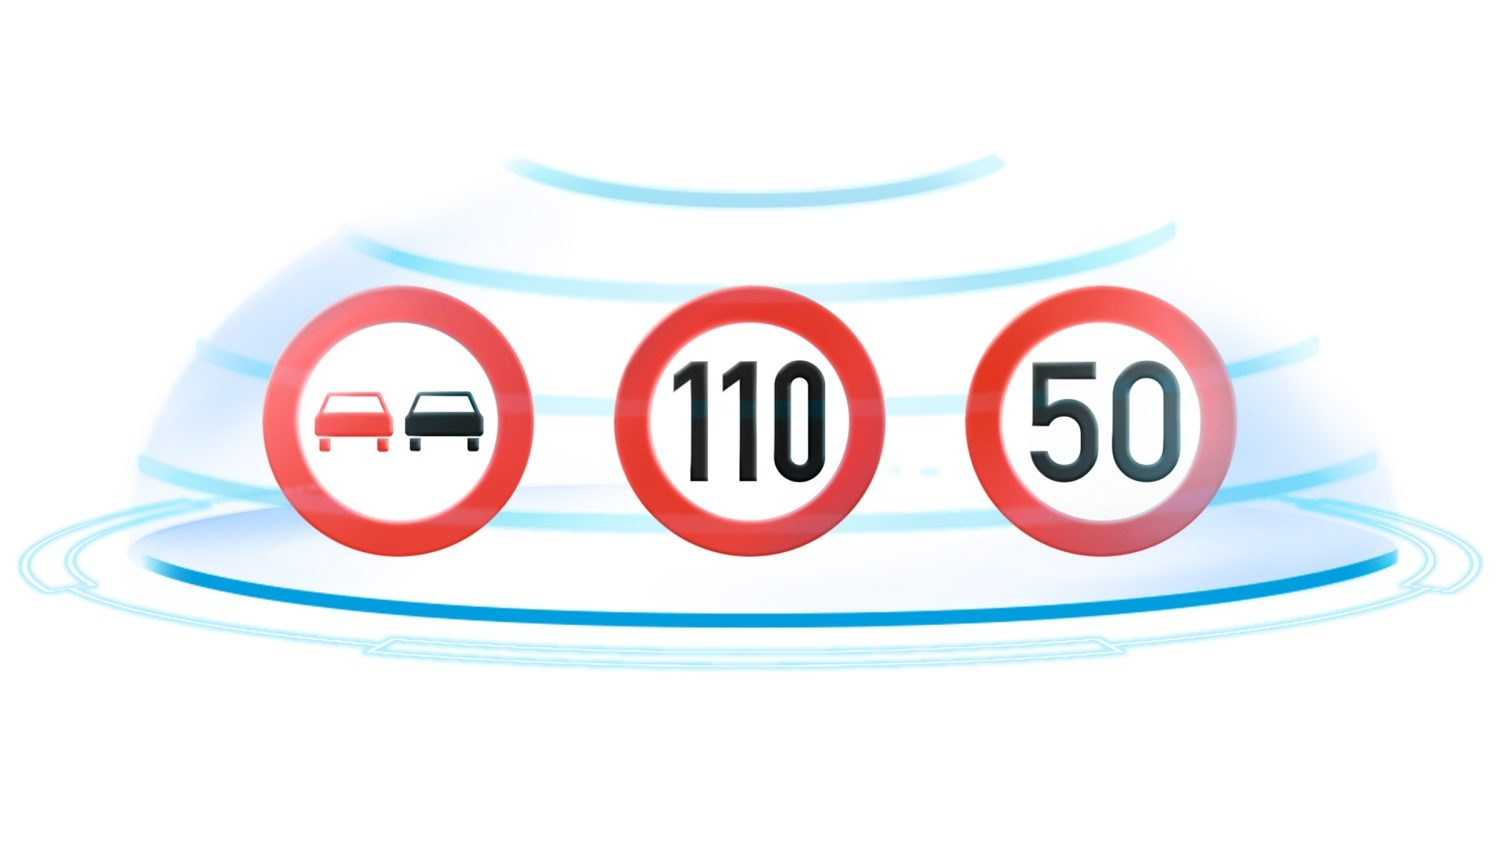 MICRA TRAFFIC SIGN RECOGNITION FPO